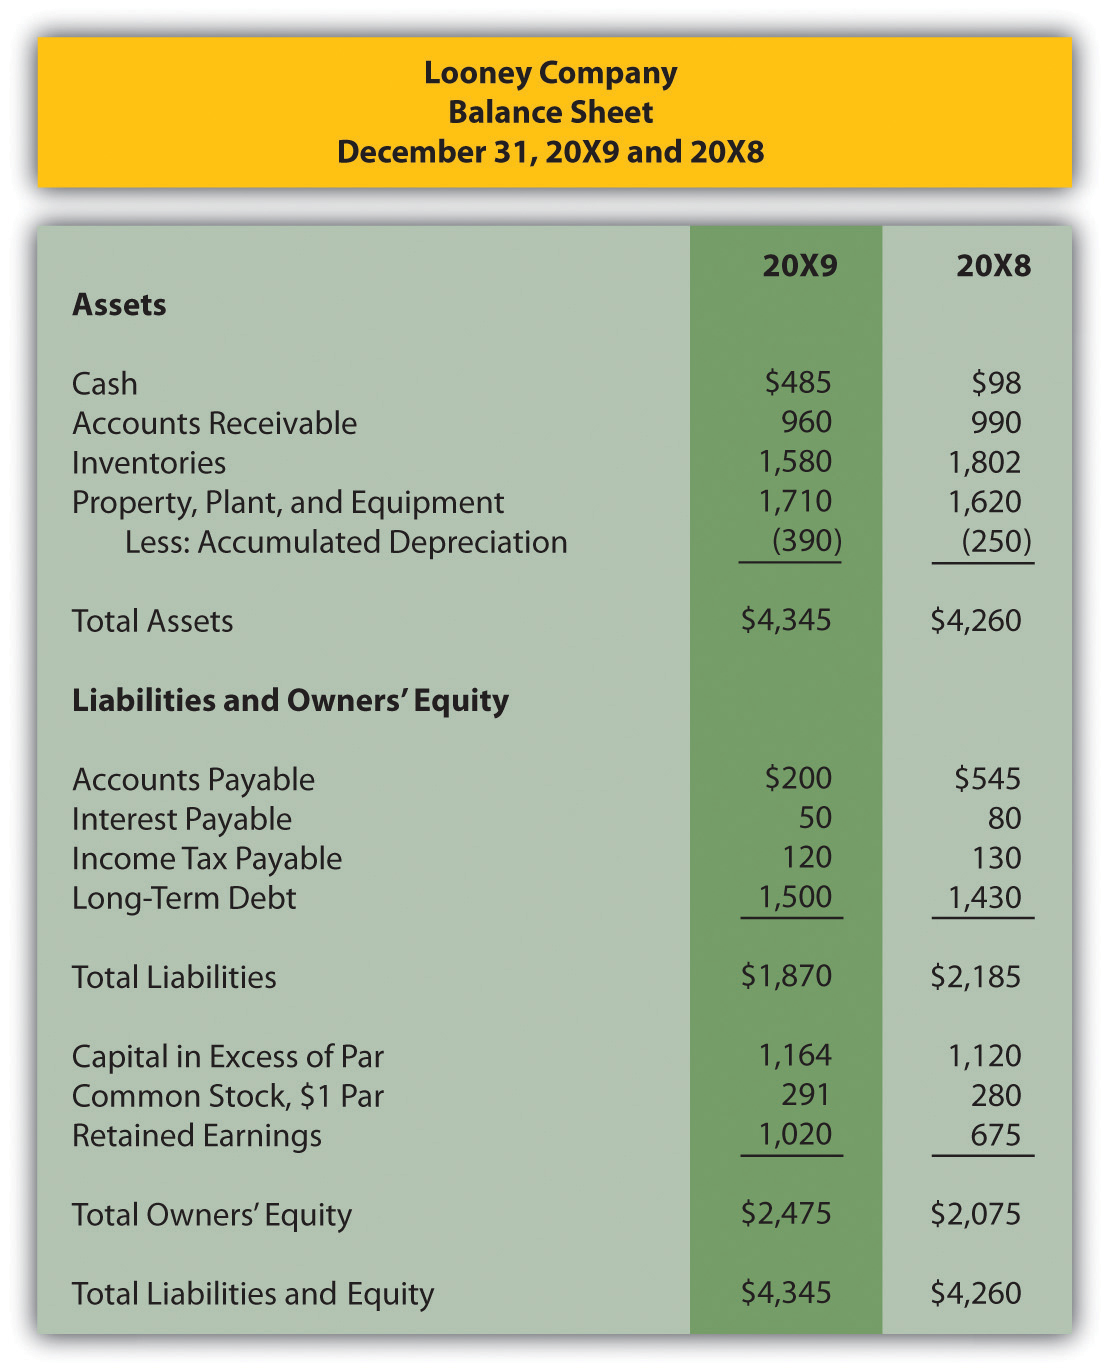 Looney Company balance sheet December 31, 20X9 and 20X8